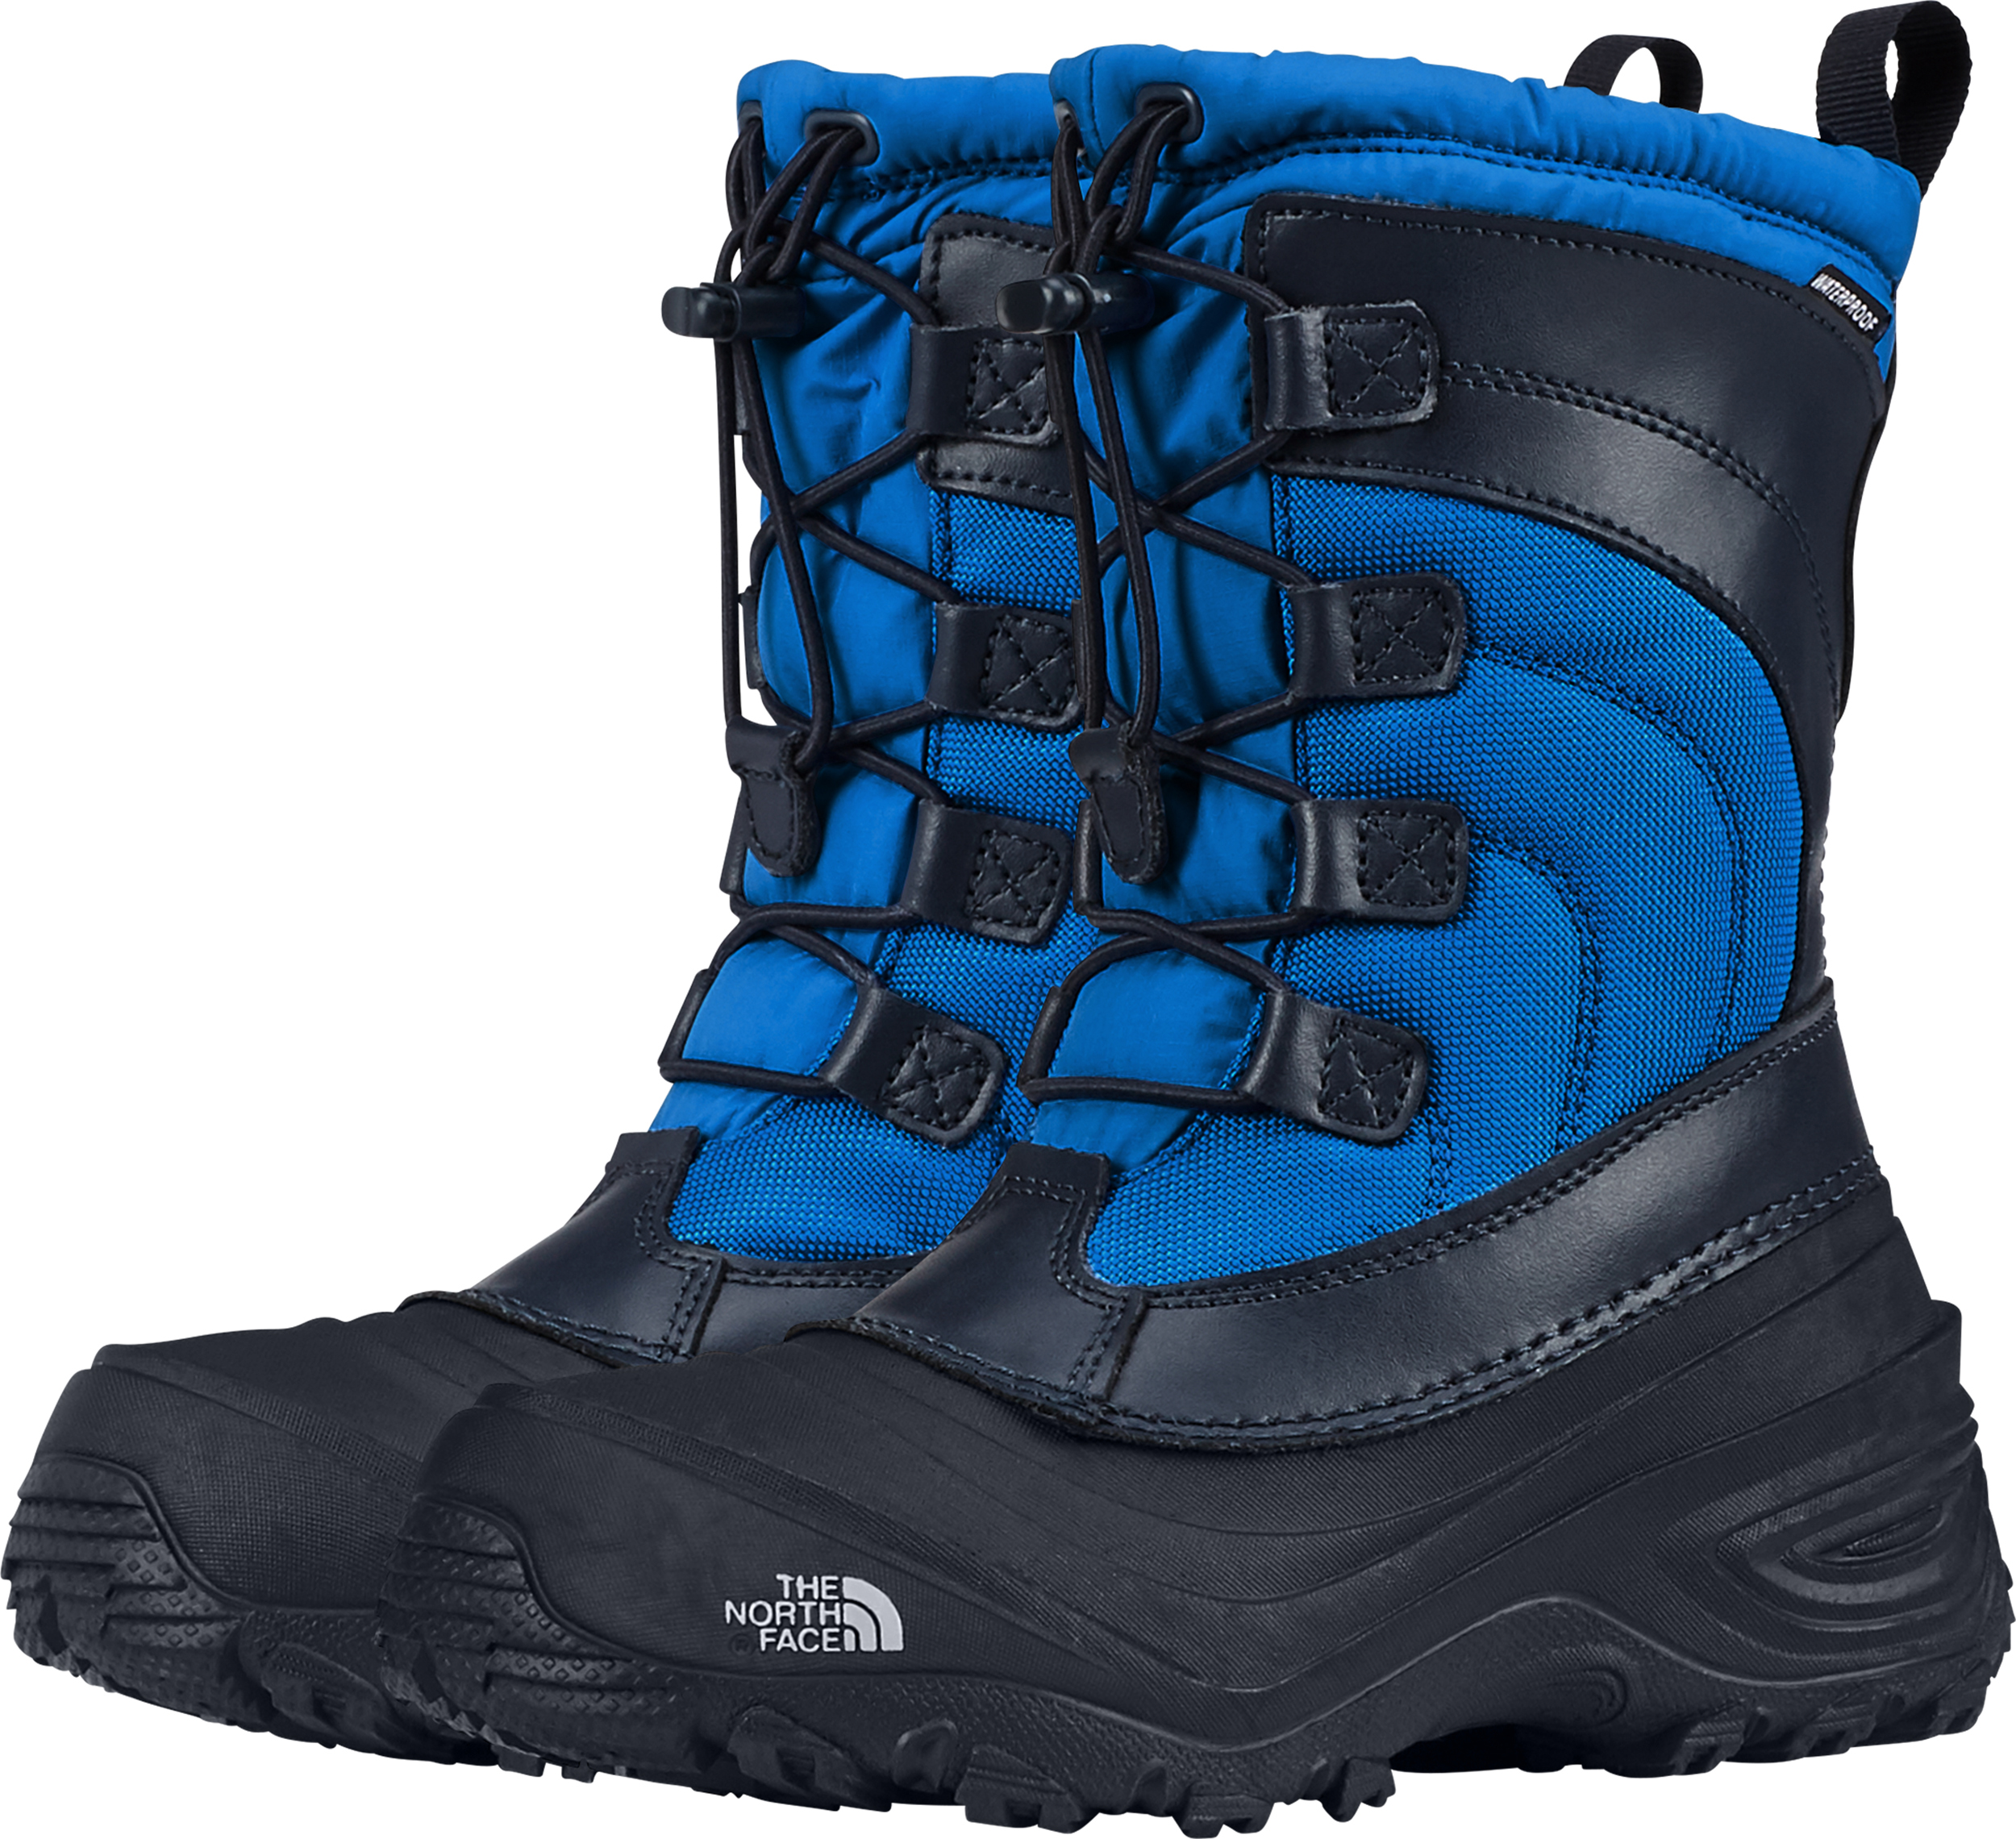 88e1dfafebdf The North Face Alpenglow IV Waterproof Winter Boots - Children to Youths